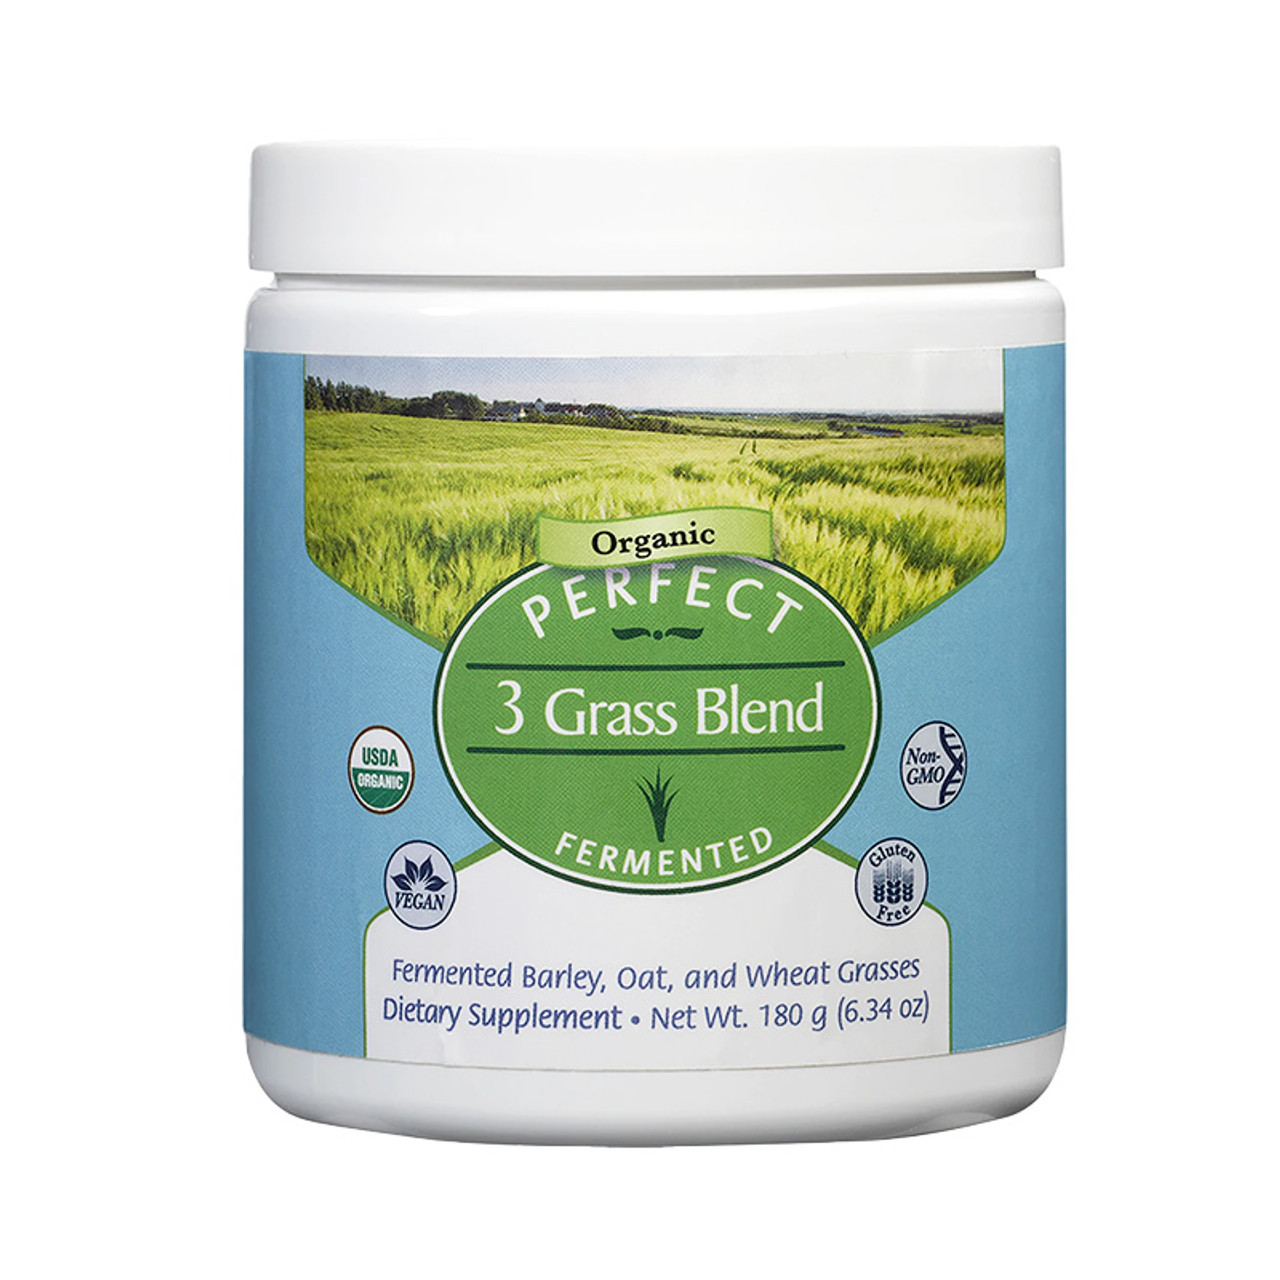 Front view of a container of Perfect 3 Grass Blend, fermented Barley, oat and wheat grass dietary supplement from Perfect Supplement.